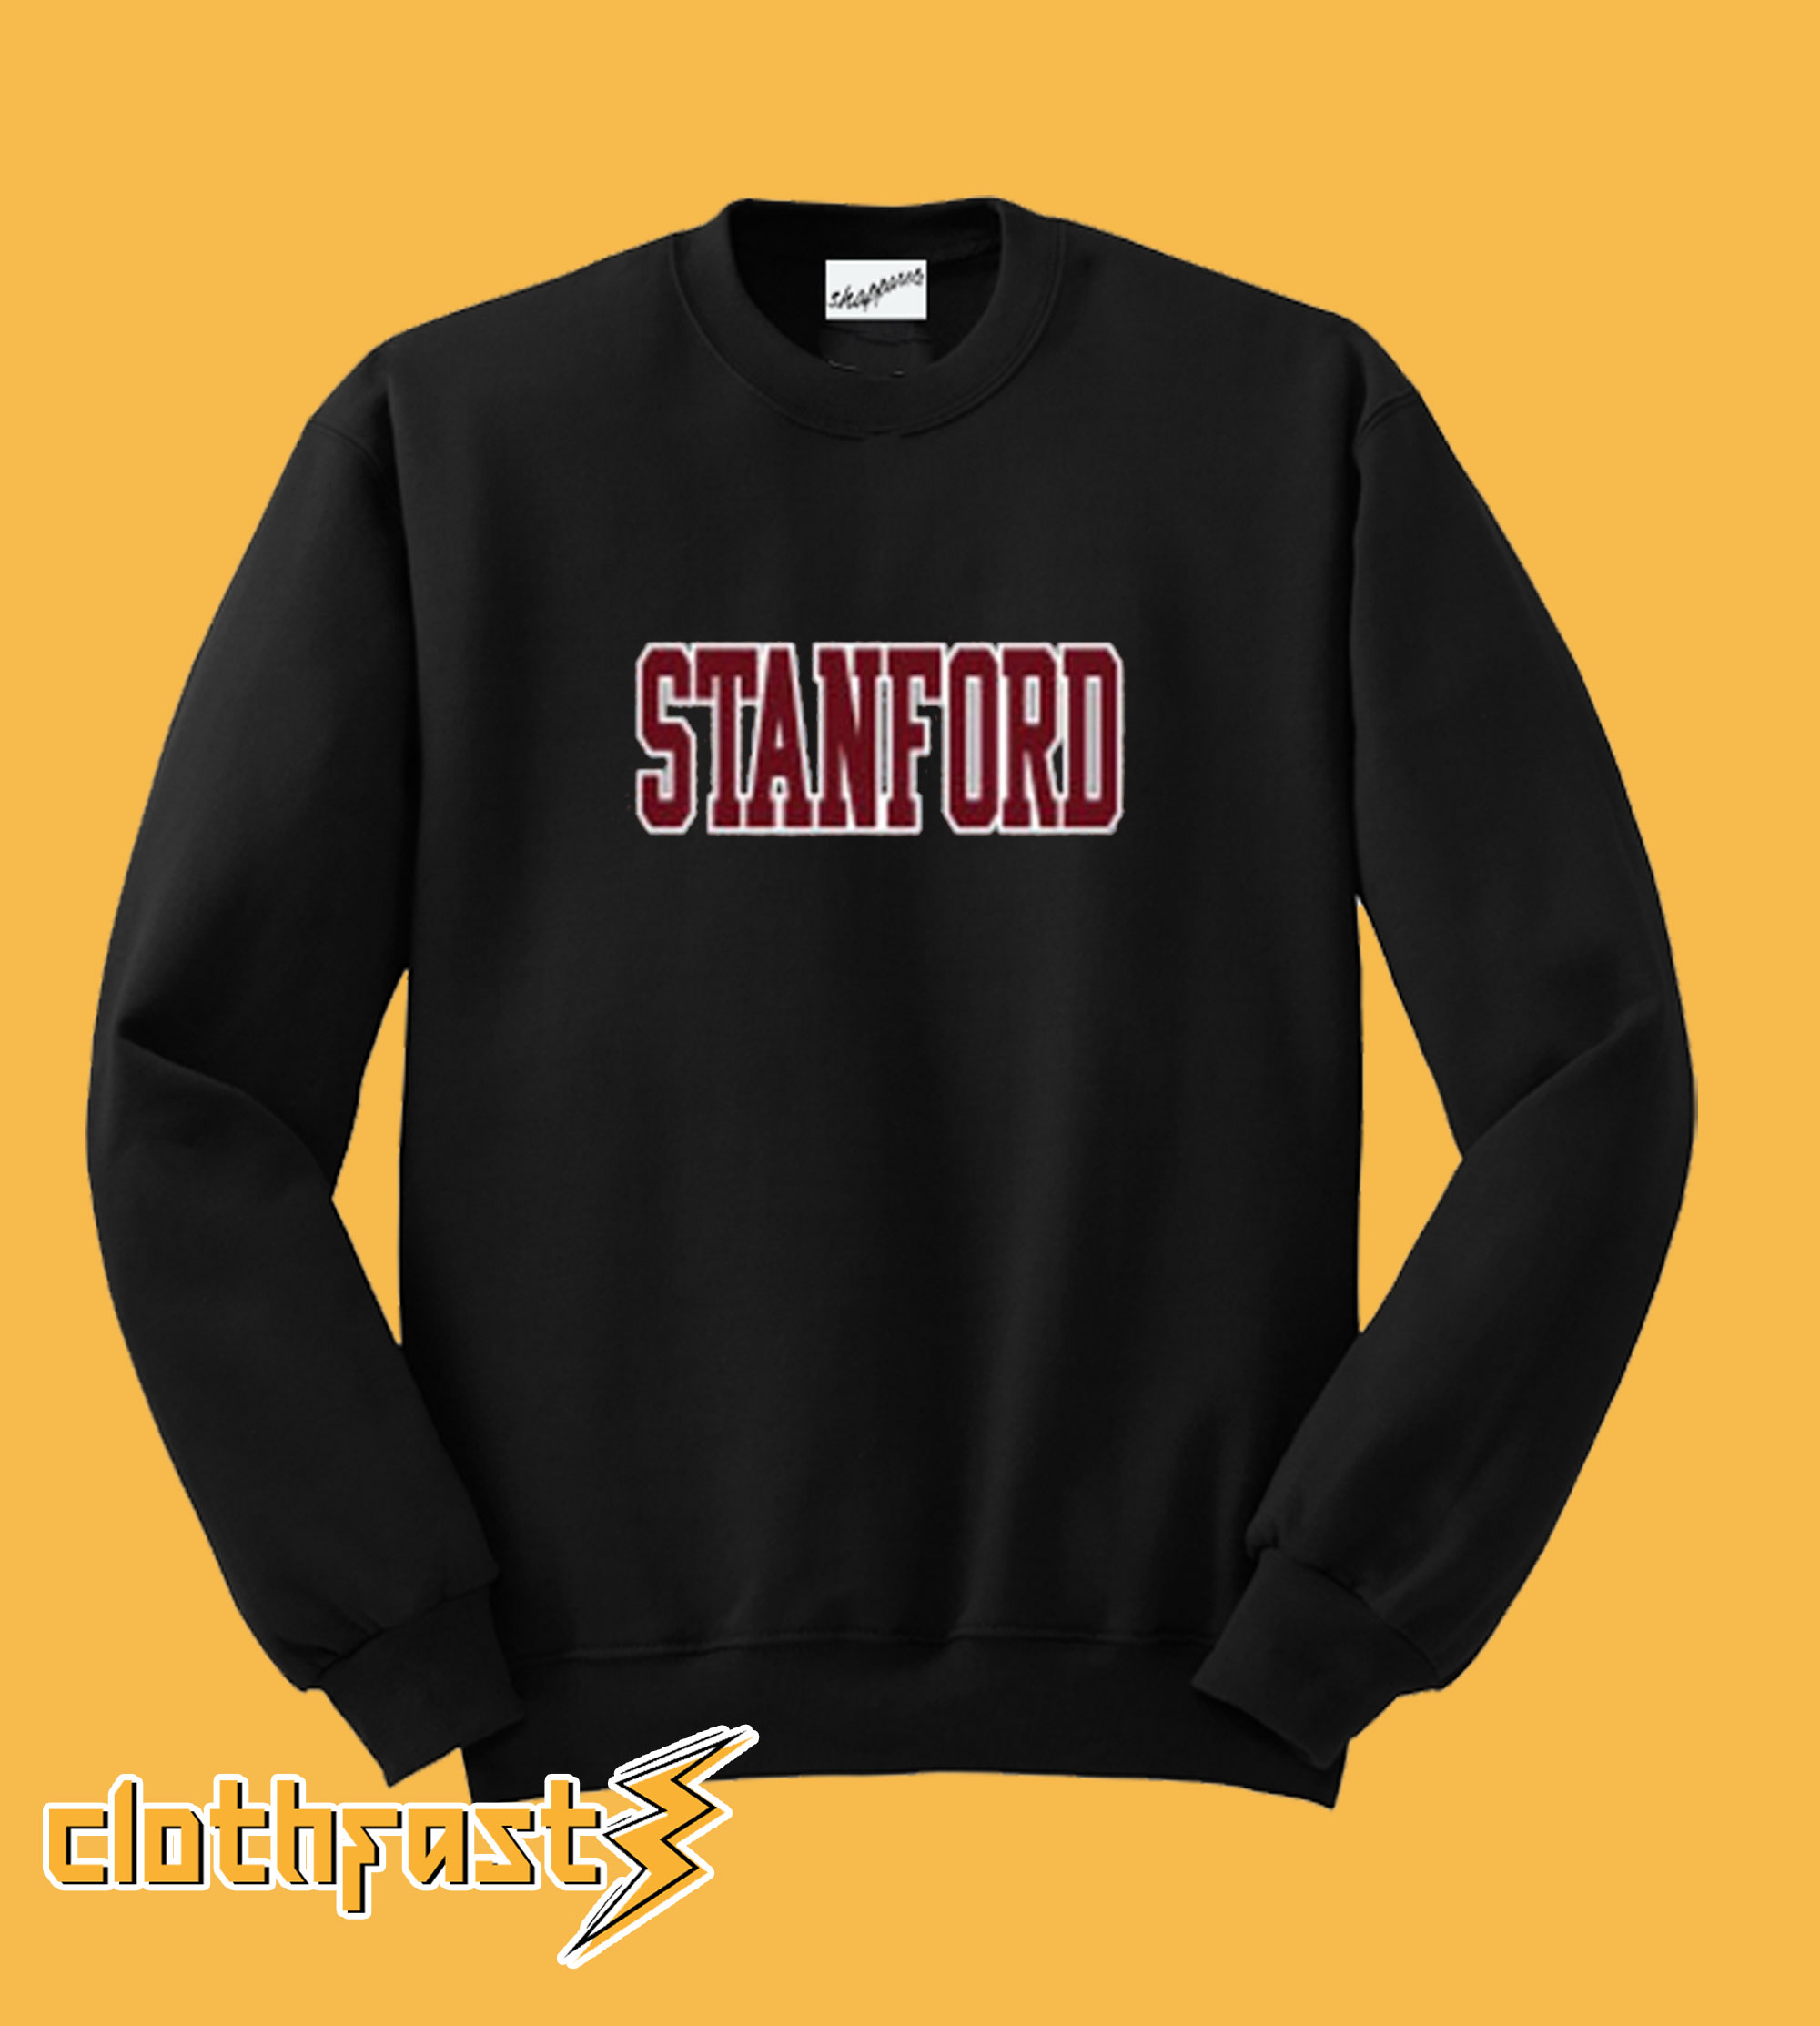 Stanford Sweatshirt